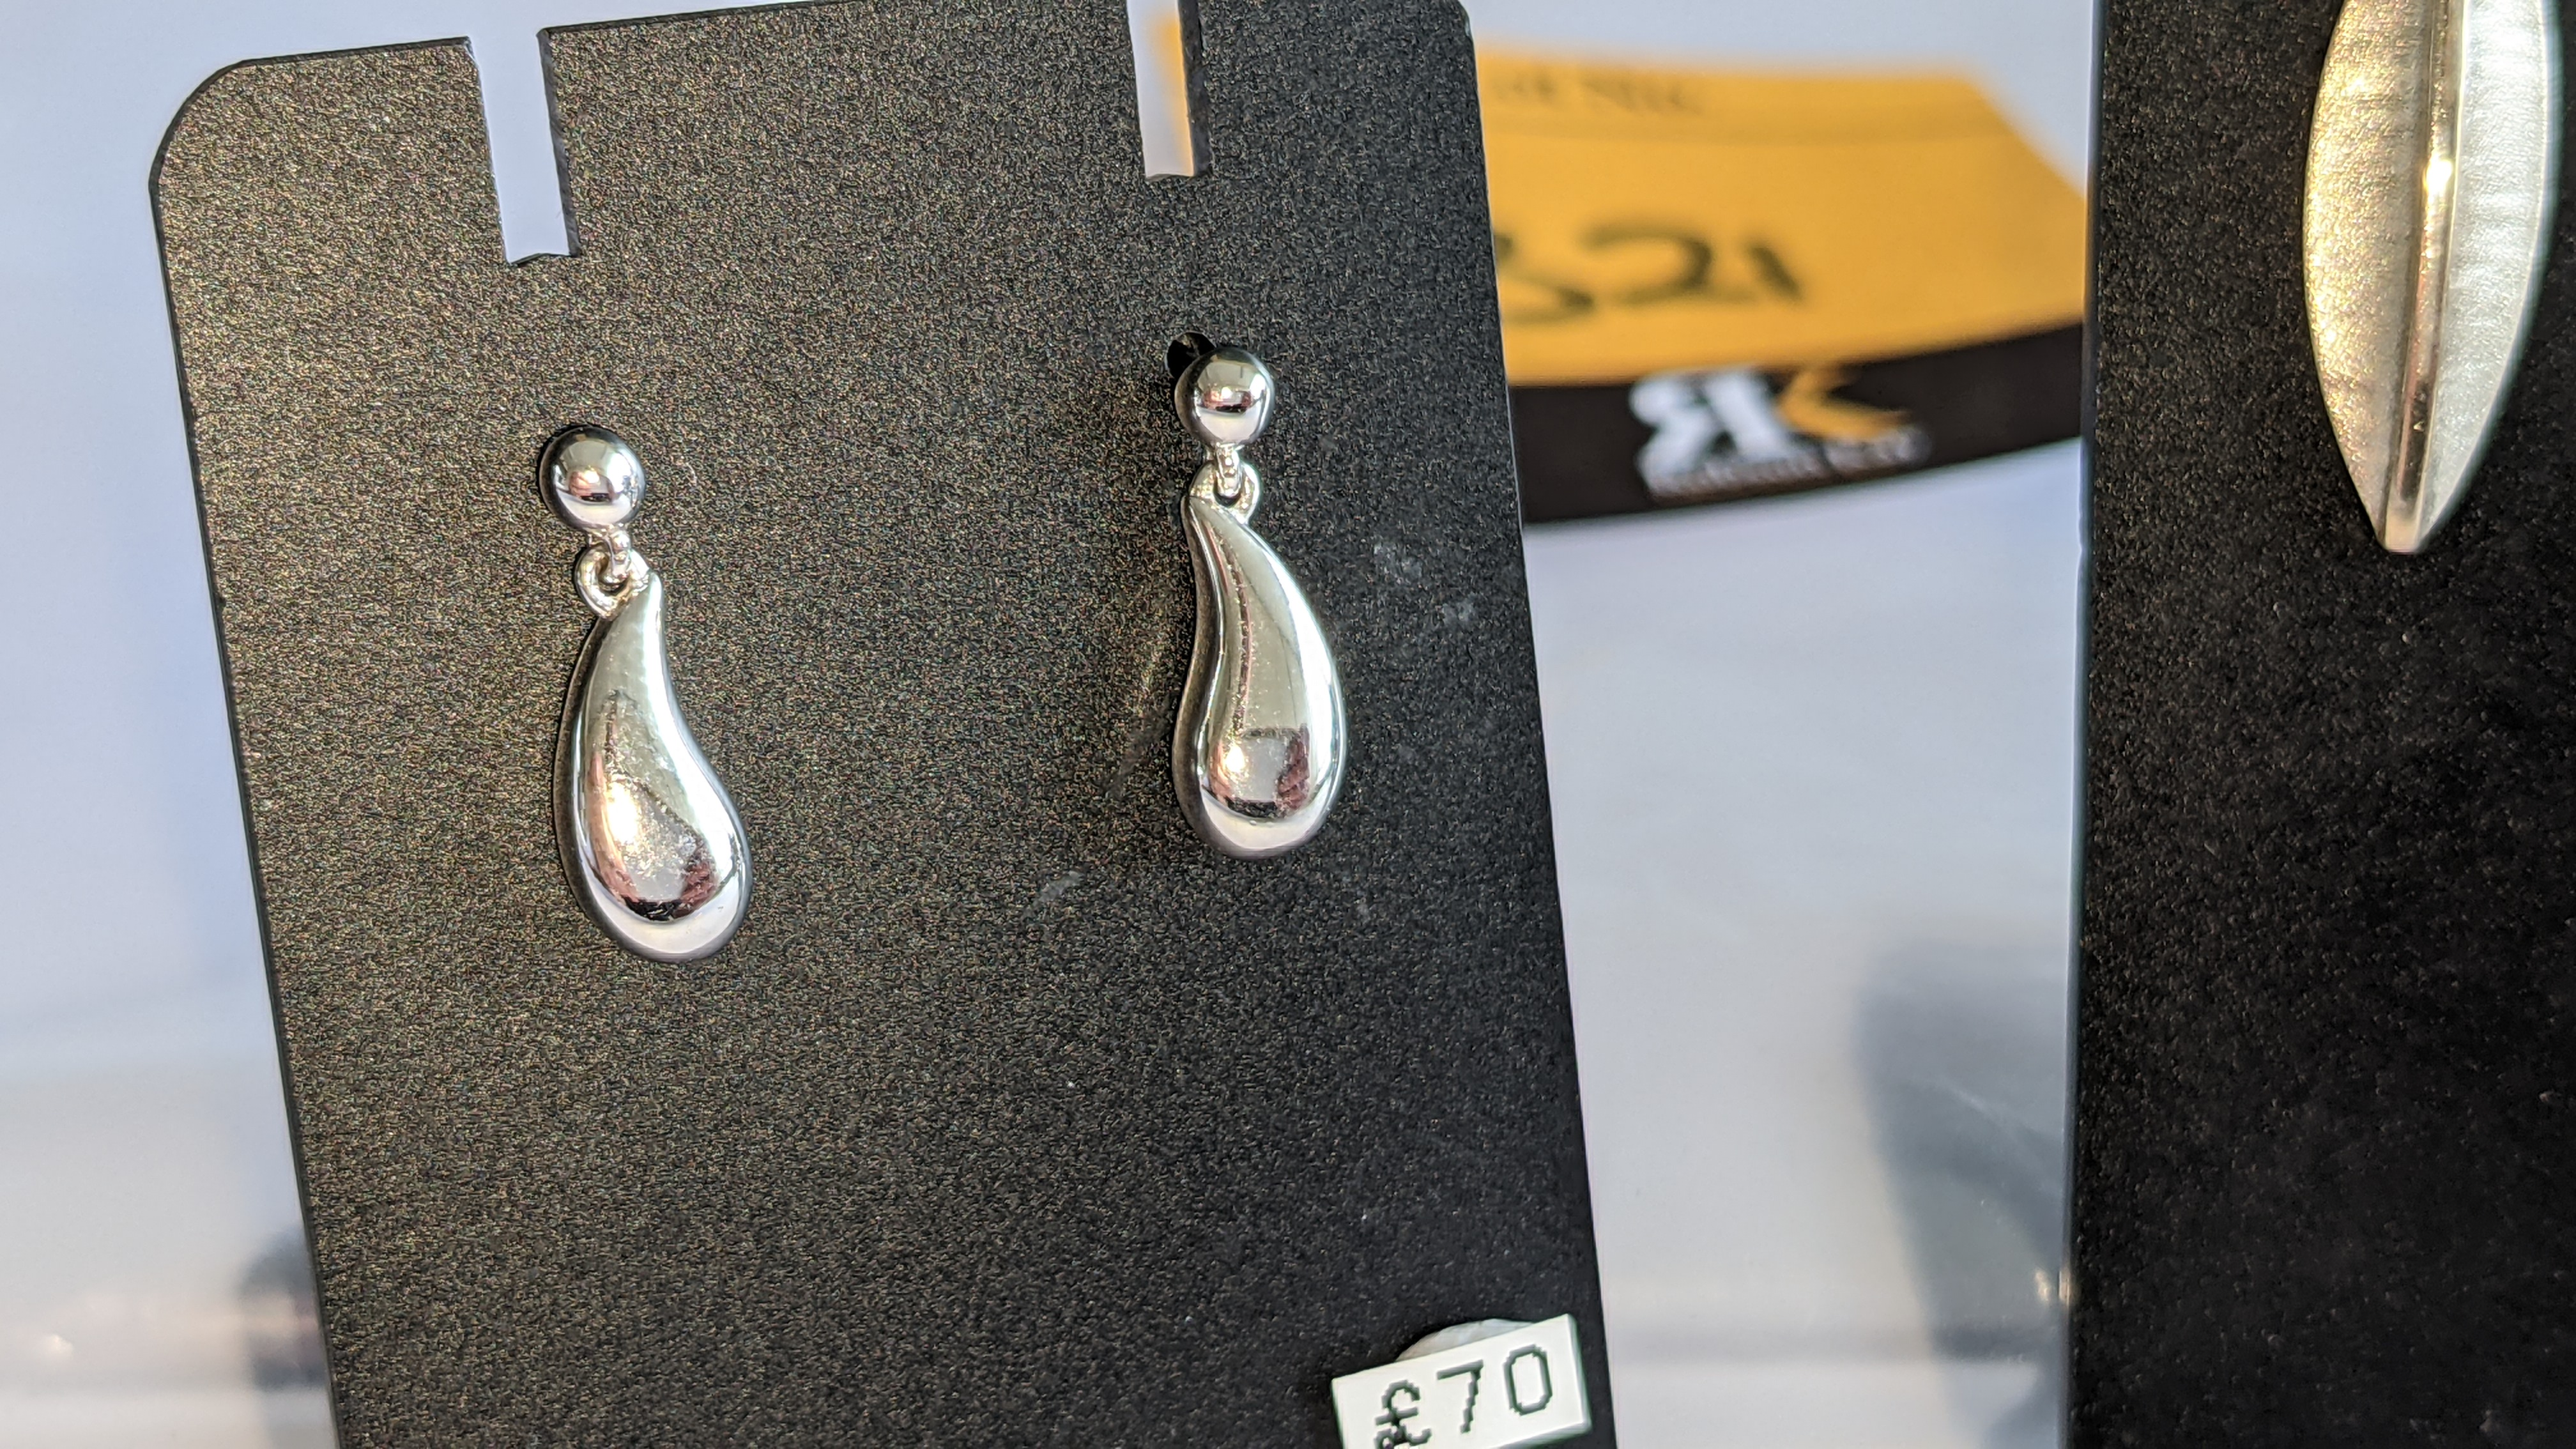 3 assorted pairs of earrings, each with a retail price of £62 - £70 per pair, total RRP £197 - Image 3 of 9